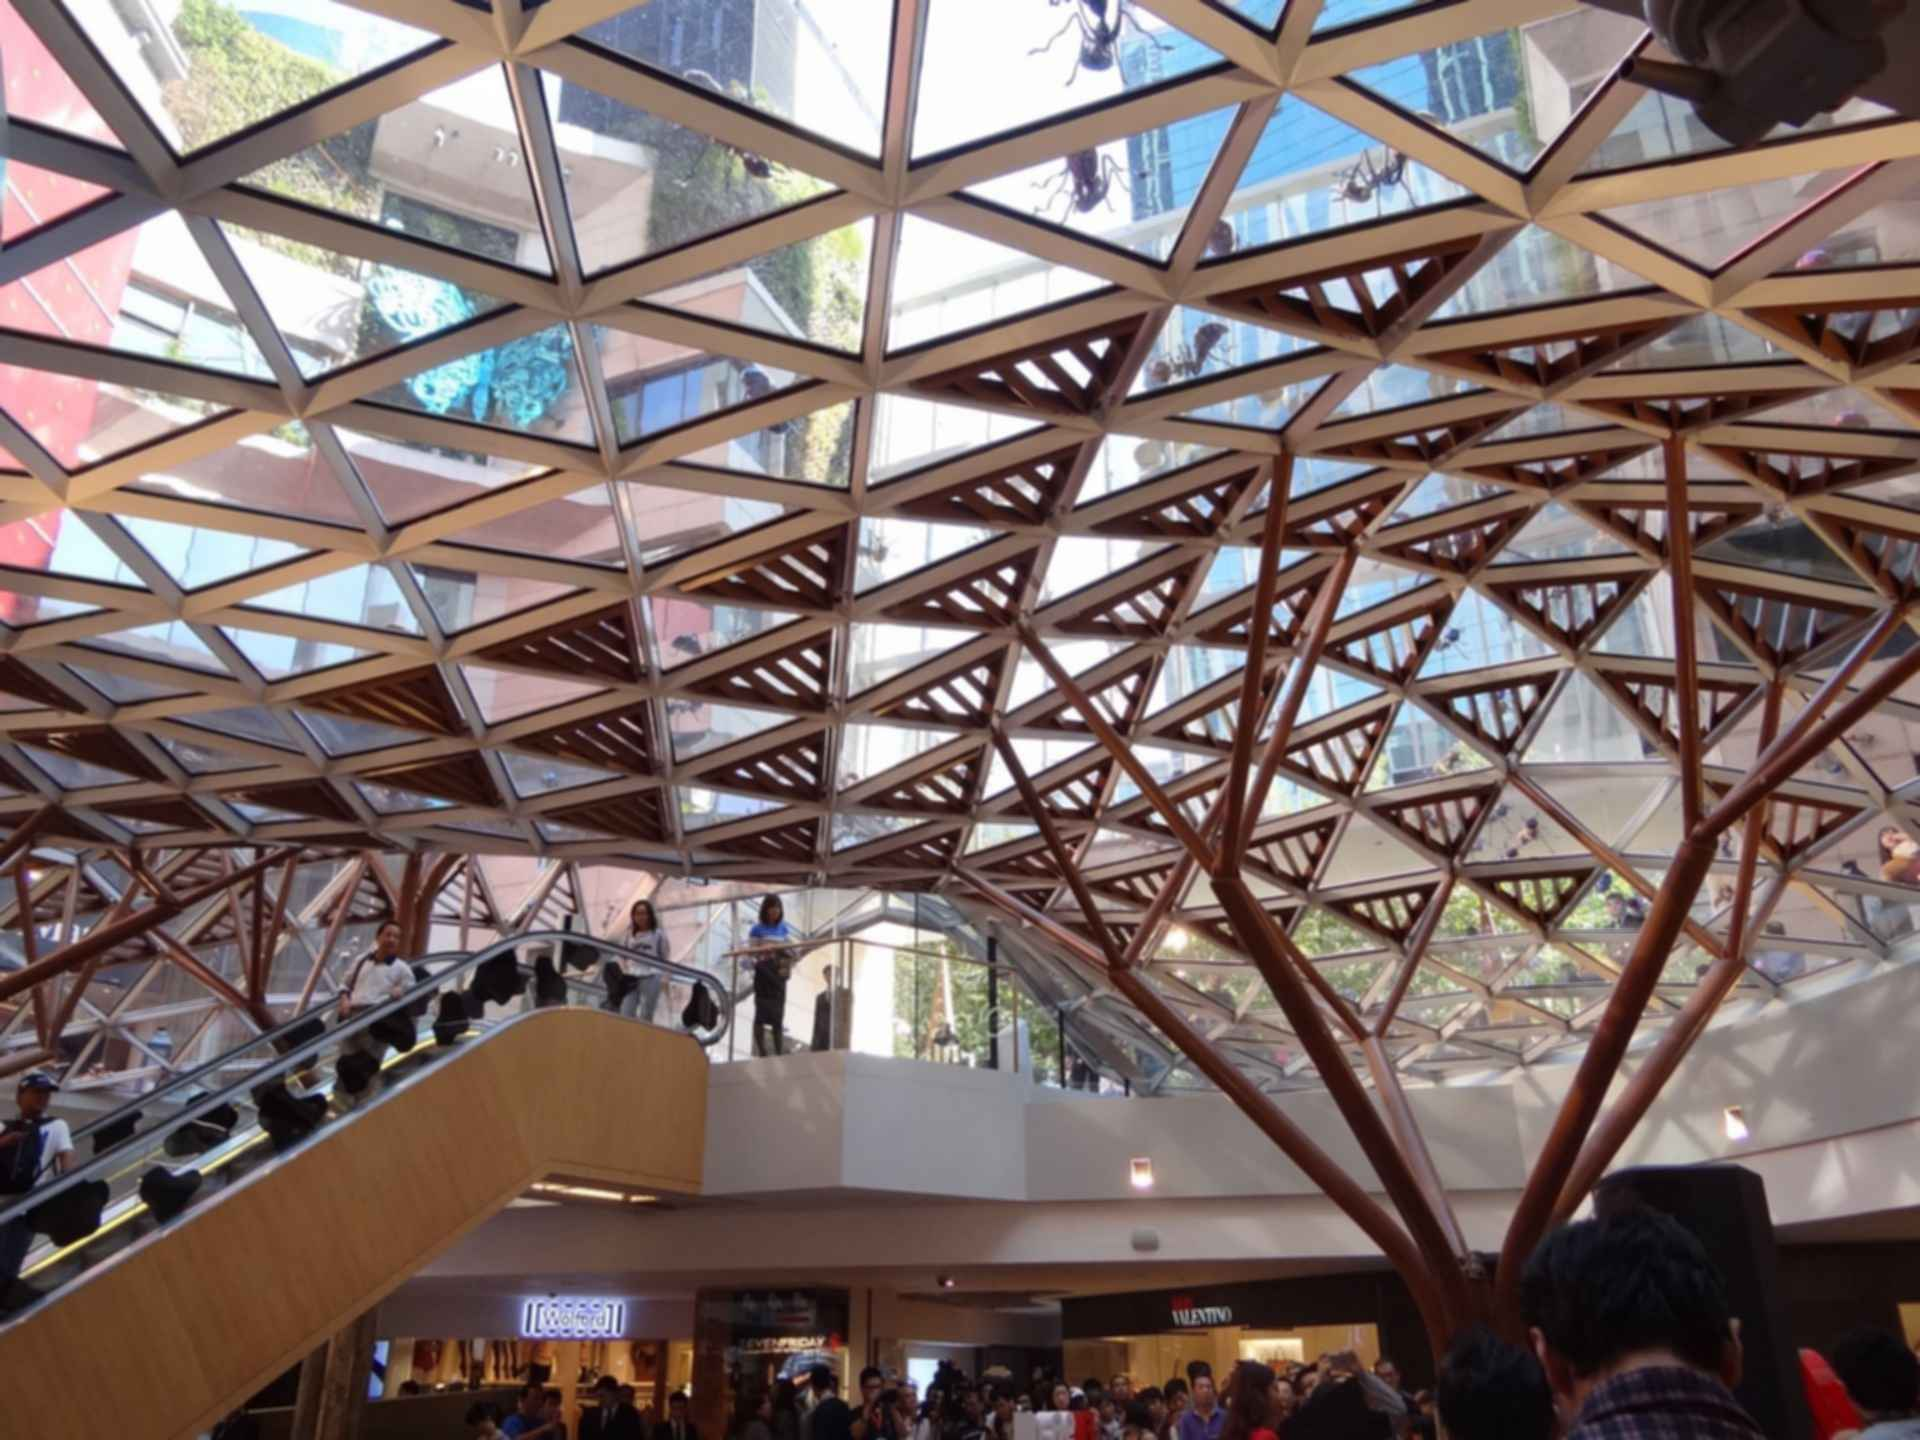 K11 Art Mall - interior glass roof